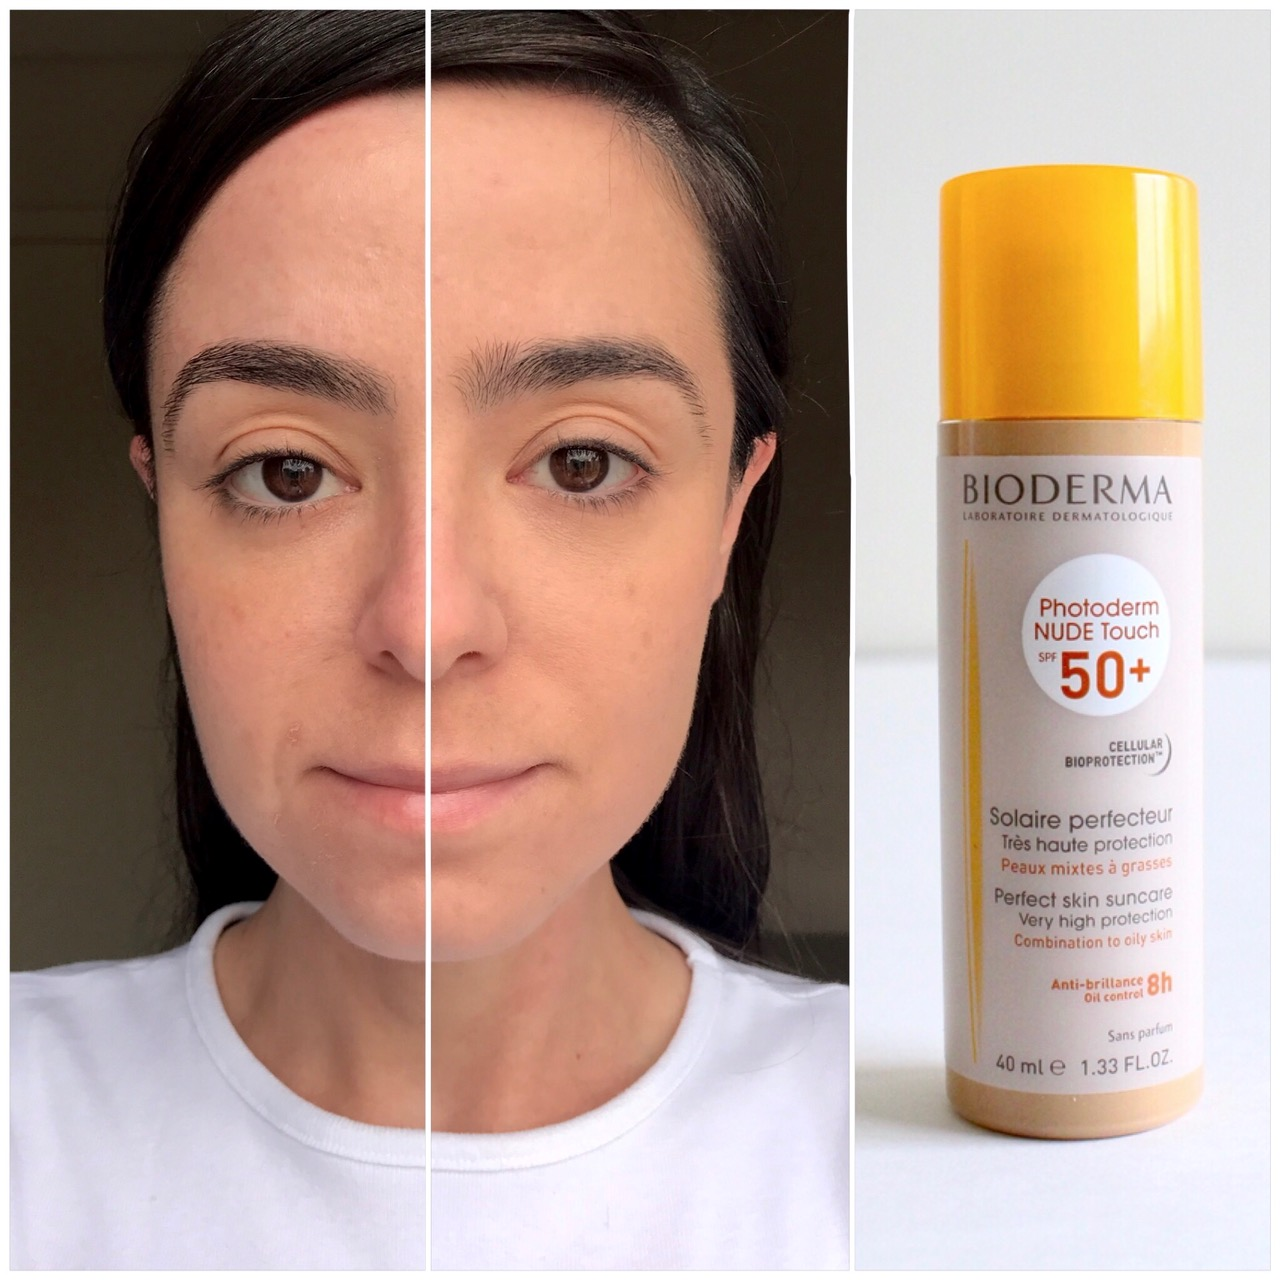 Protetor Solar Bioderma Photoderm Nude Touch FPS50 Claro